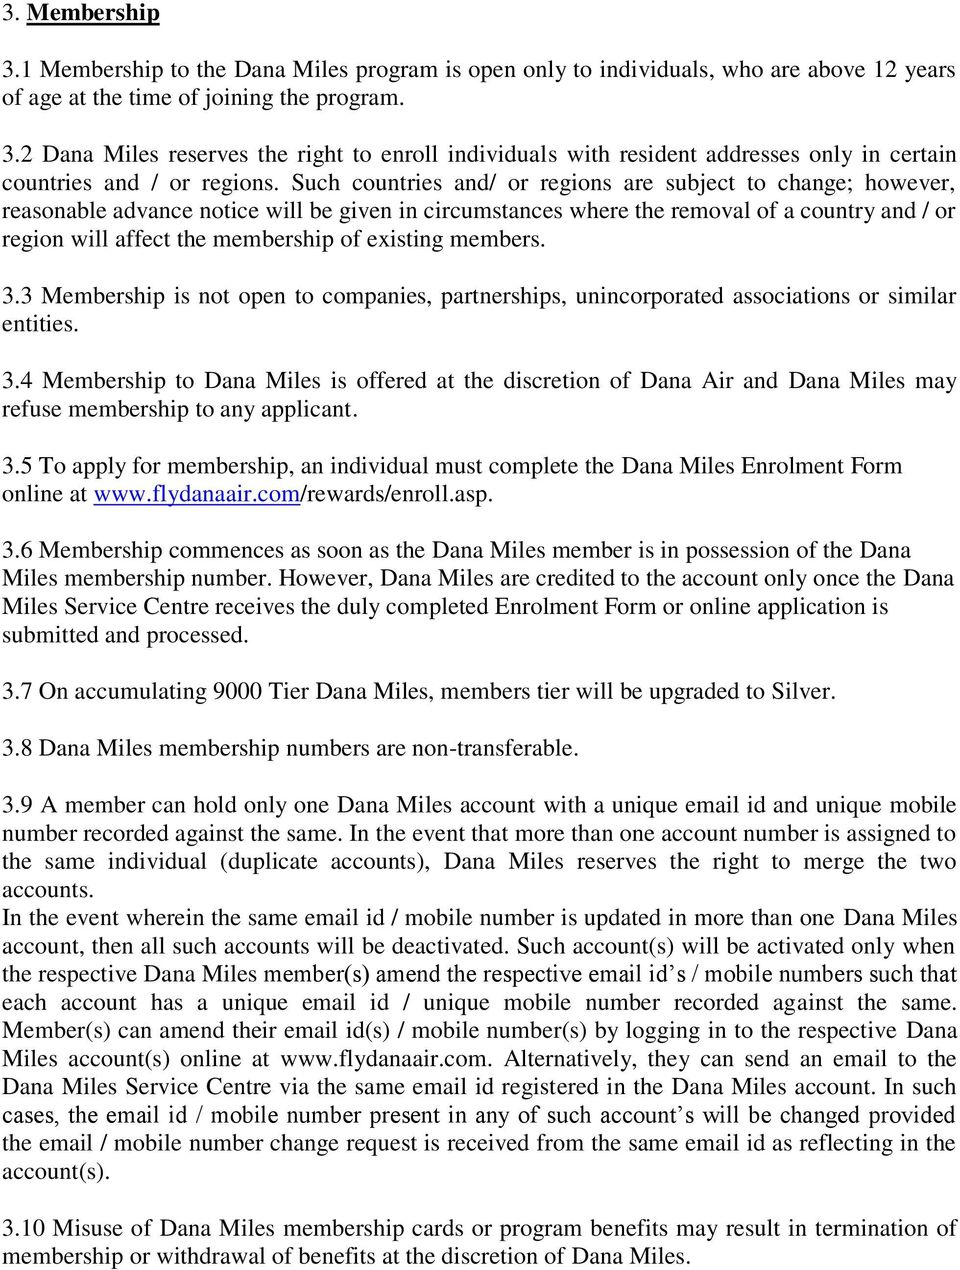 existing members. 3.3 Membership is not open to companies, partnerships, unincorporated associations or similar entities. 3.4 Membership to Dana Miles is offered at the discretion of Dana Air and Dana Miles may refuse membership to any applicant.